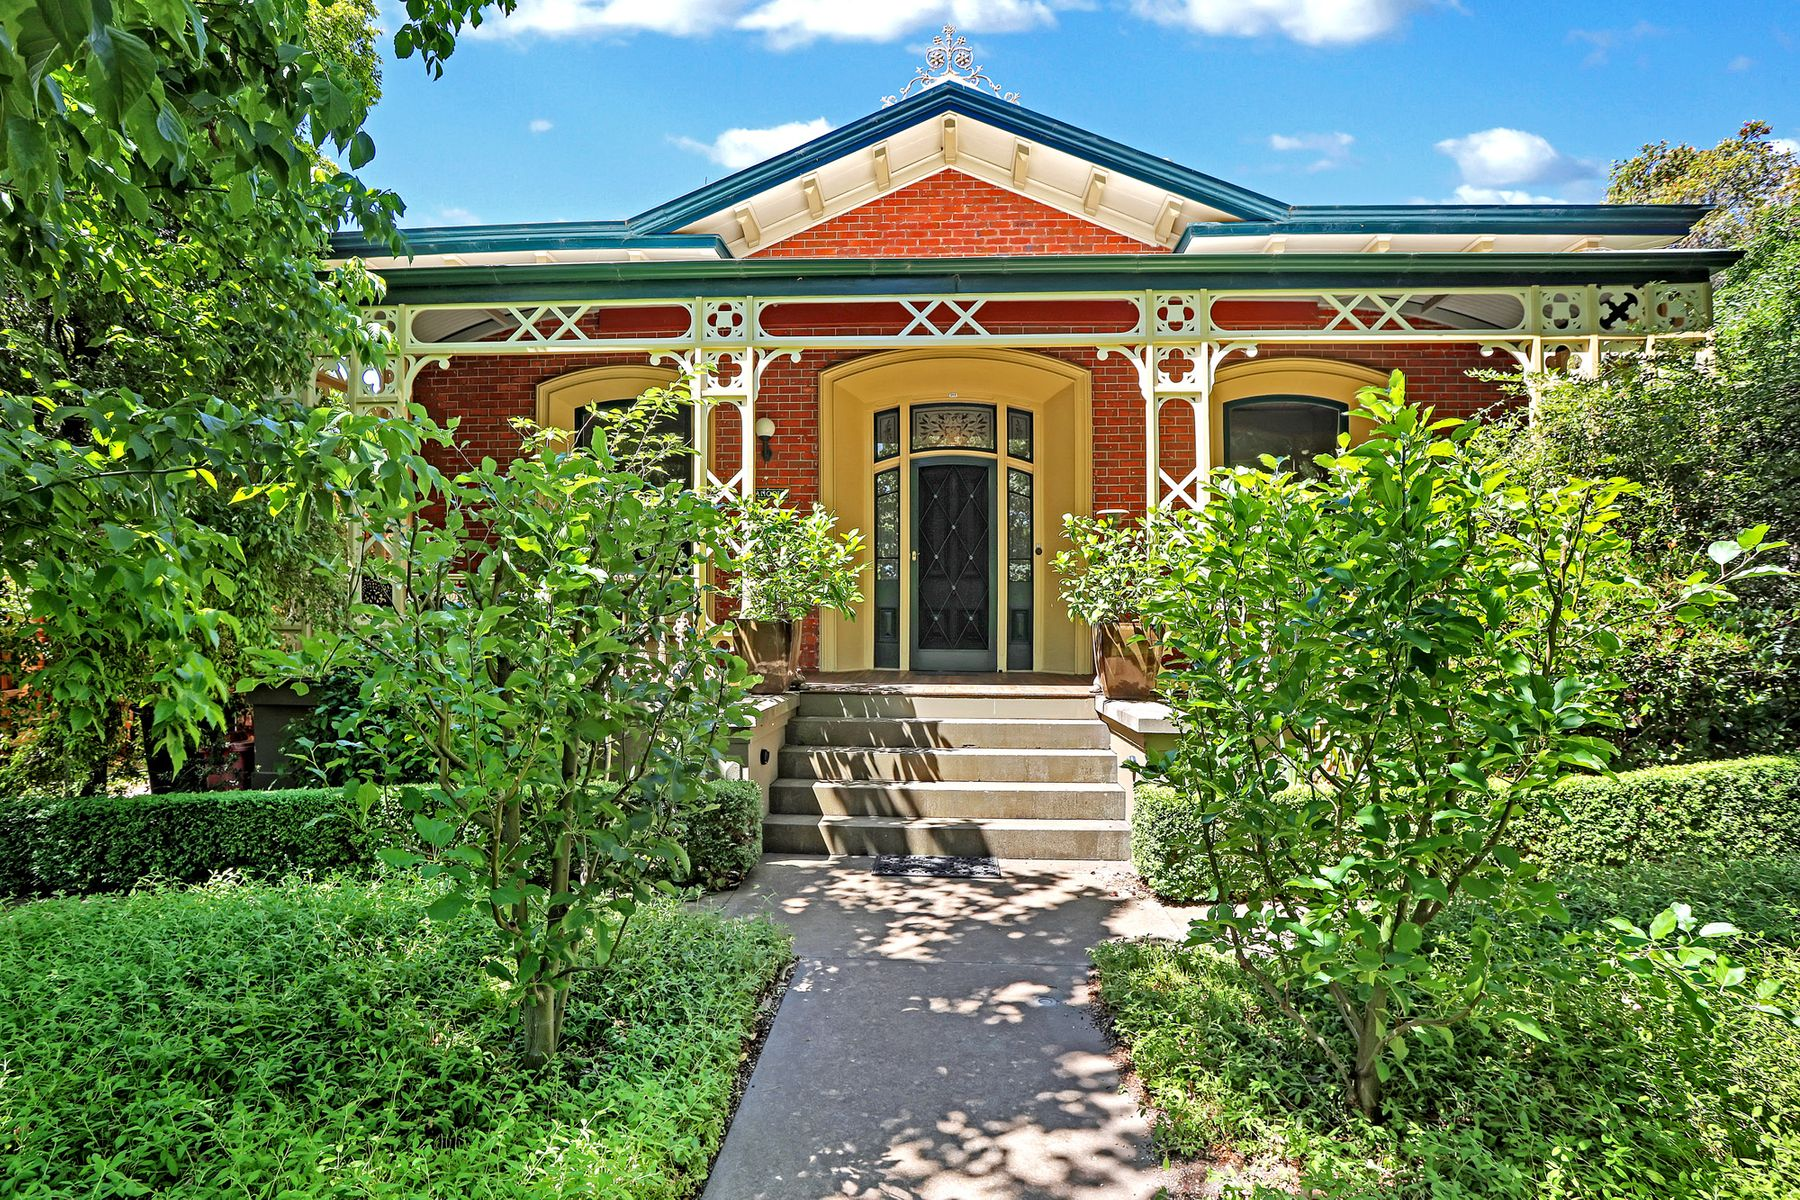 282 View Street, Bendigo, VIC 3550